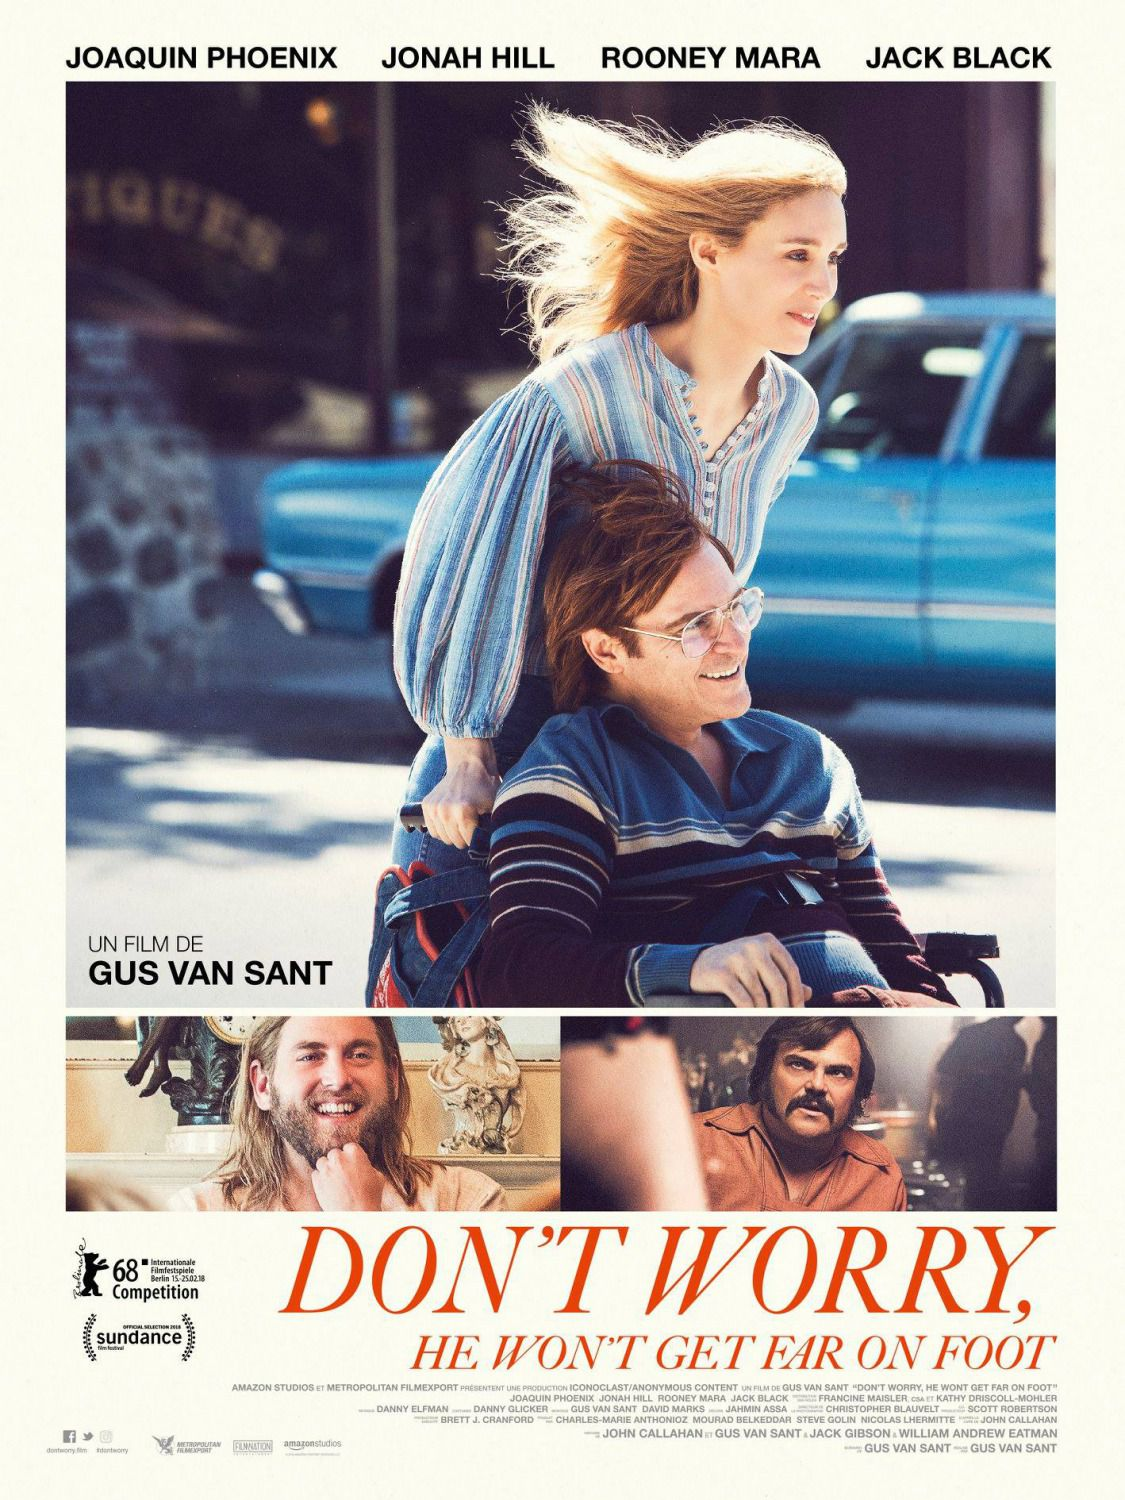 Dont Worry he wont get Far on Foot - Non Preoccuparti non e Lontano a Piedi - Joaquin Phoenix, Rooney Mara, Jonah Hill, Jack Black - poster 2018